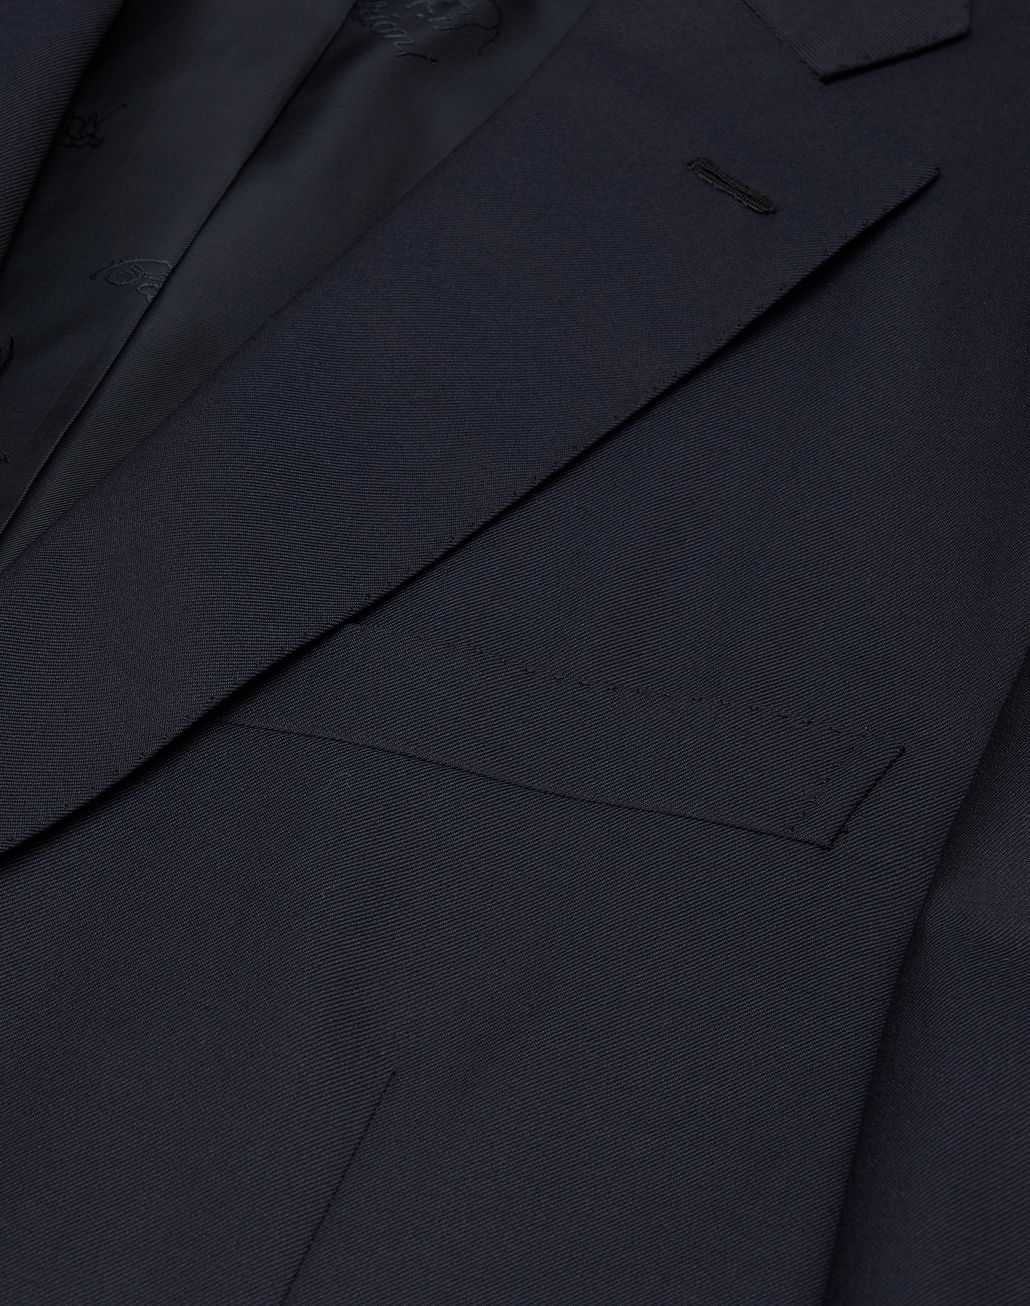 BRIONI 'Essential' Navy Blue Brunico Suit Suits & Jackets [*** pickupInStoreShippingNotGuaranteed_info ***] a